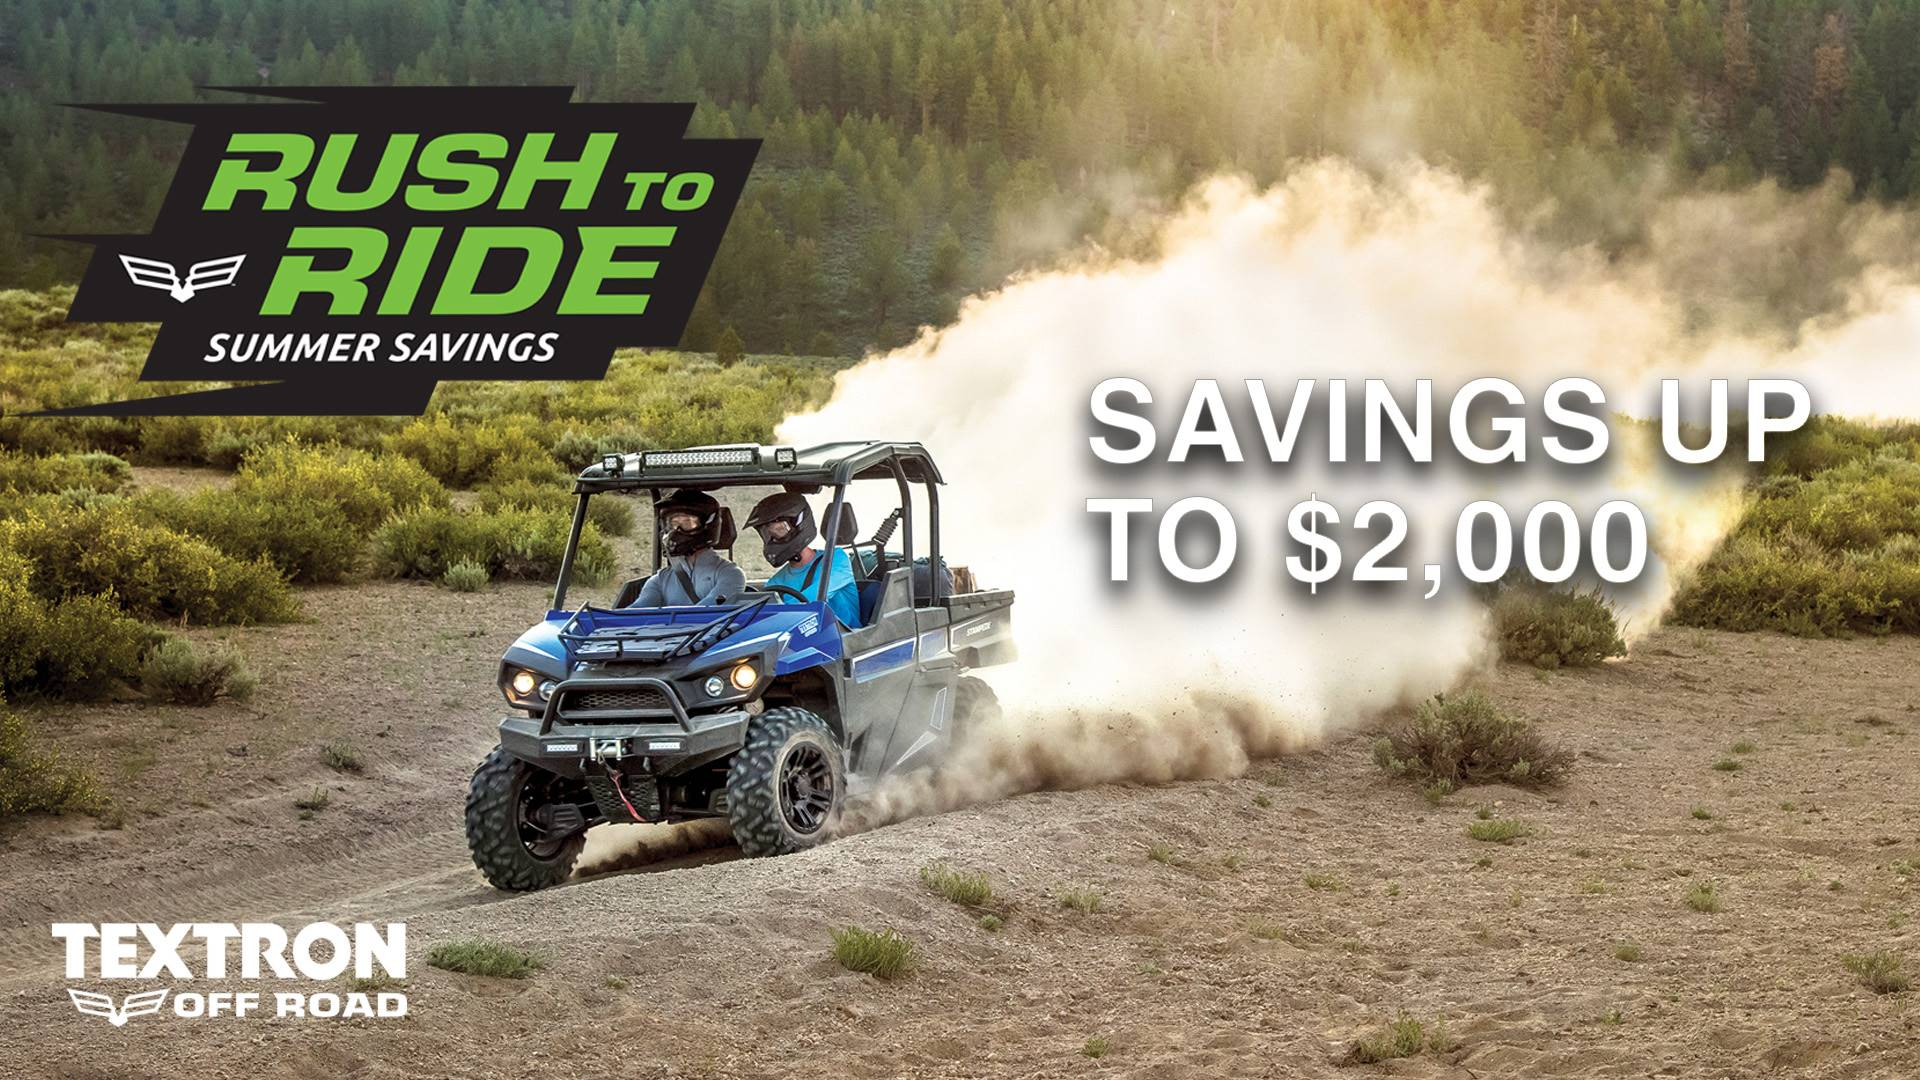 Bad Boy Offroad (Textron Legacy) Rush To Ride Sales Event